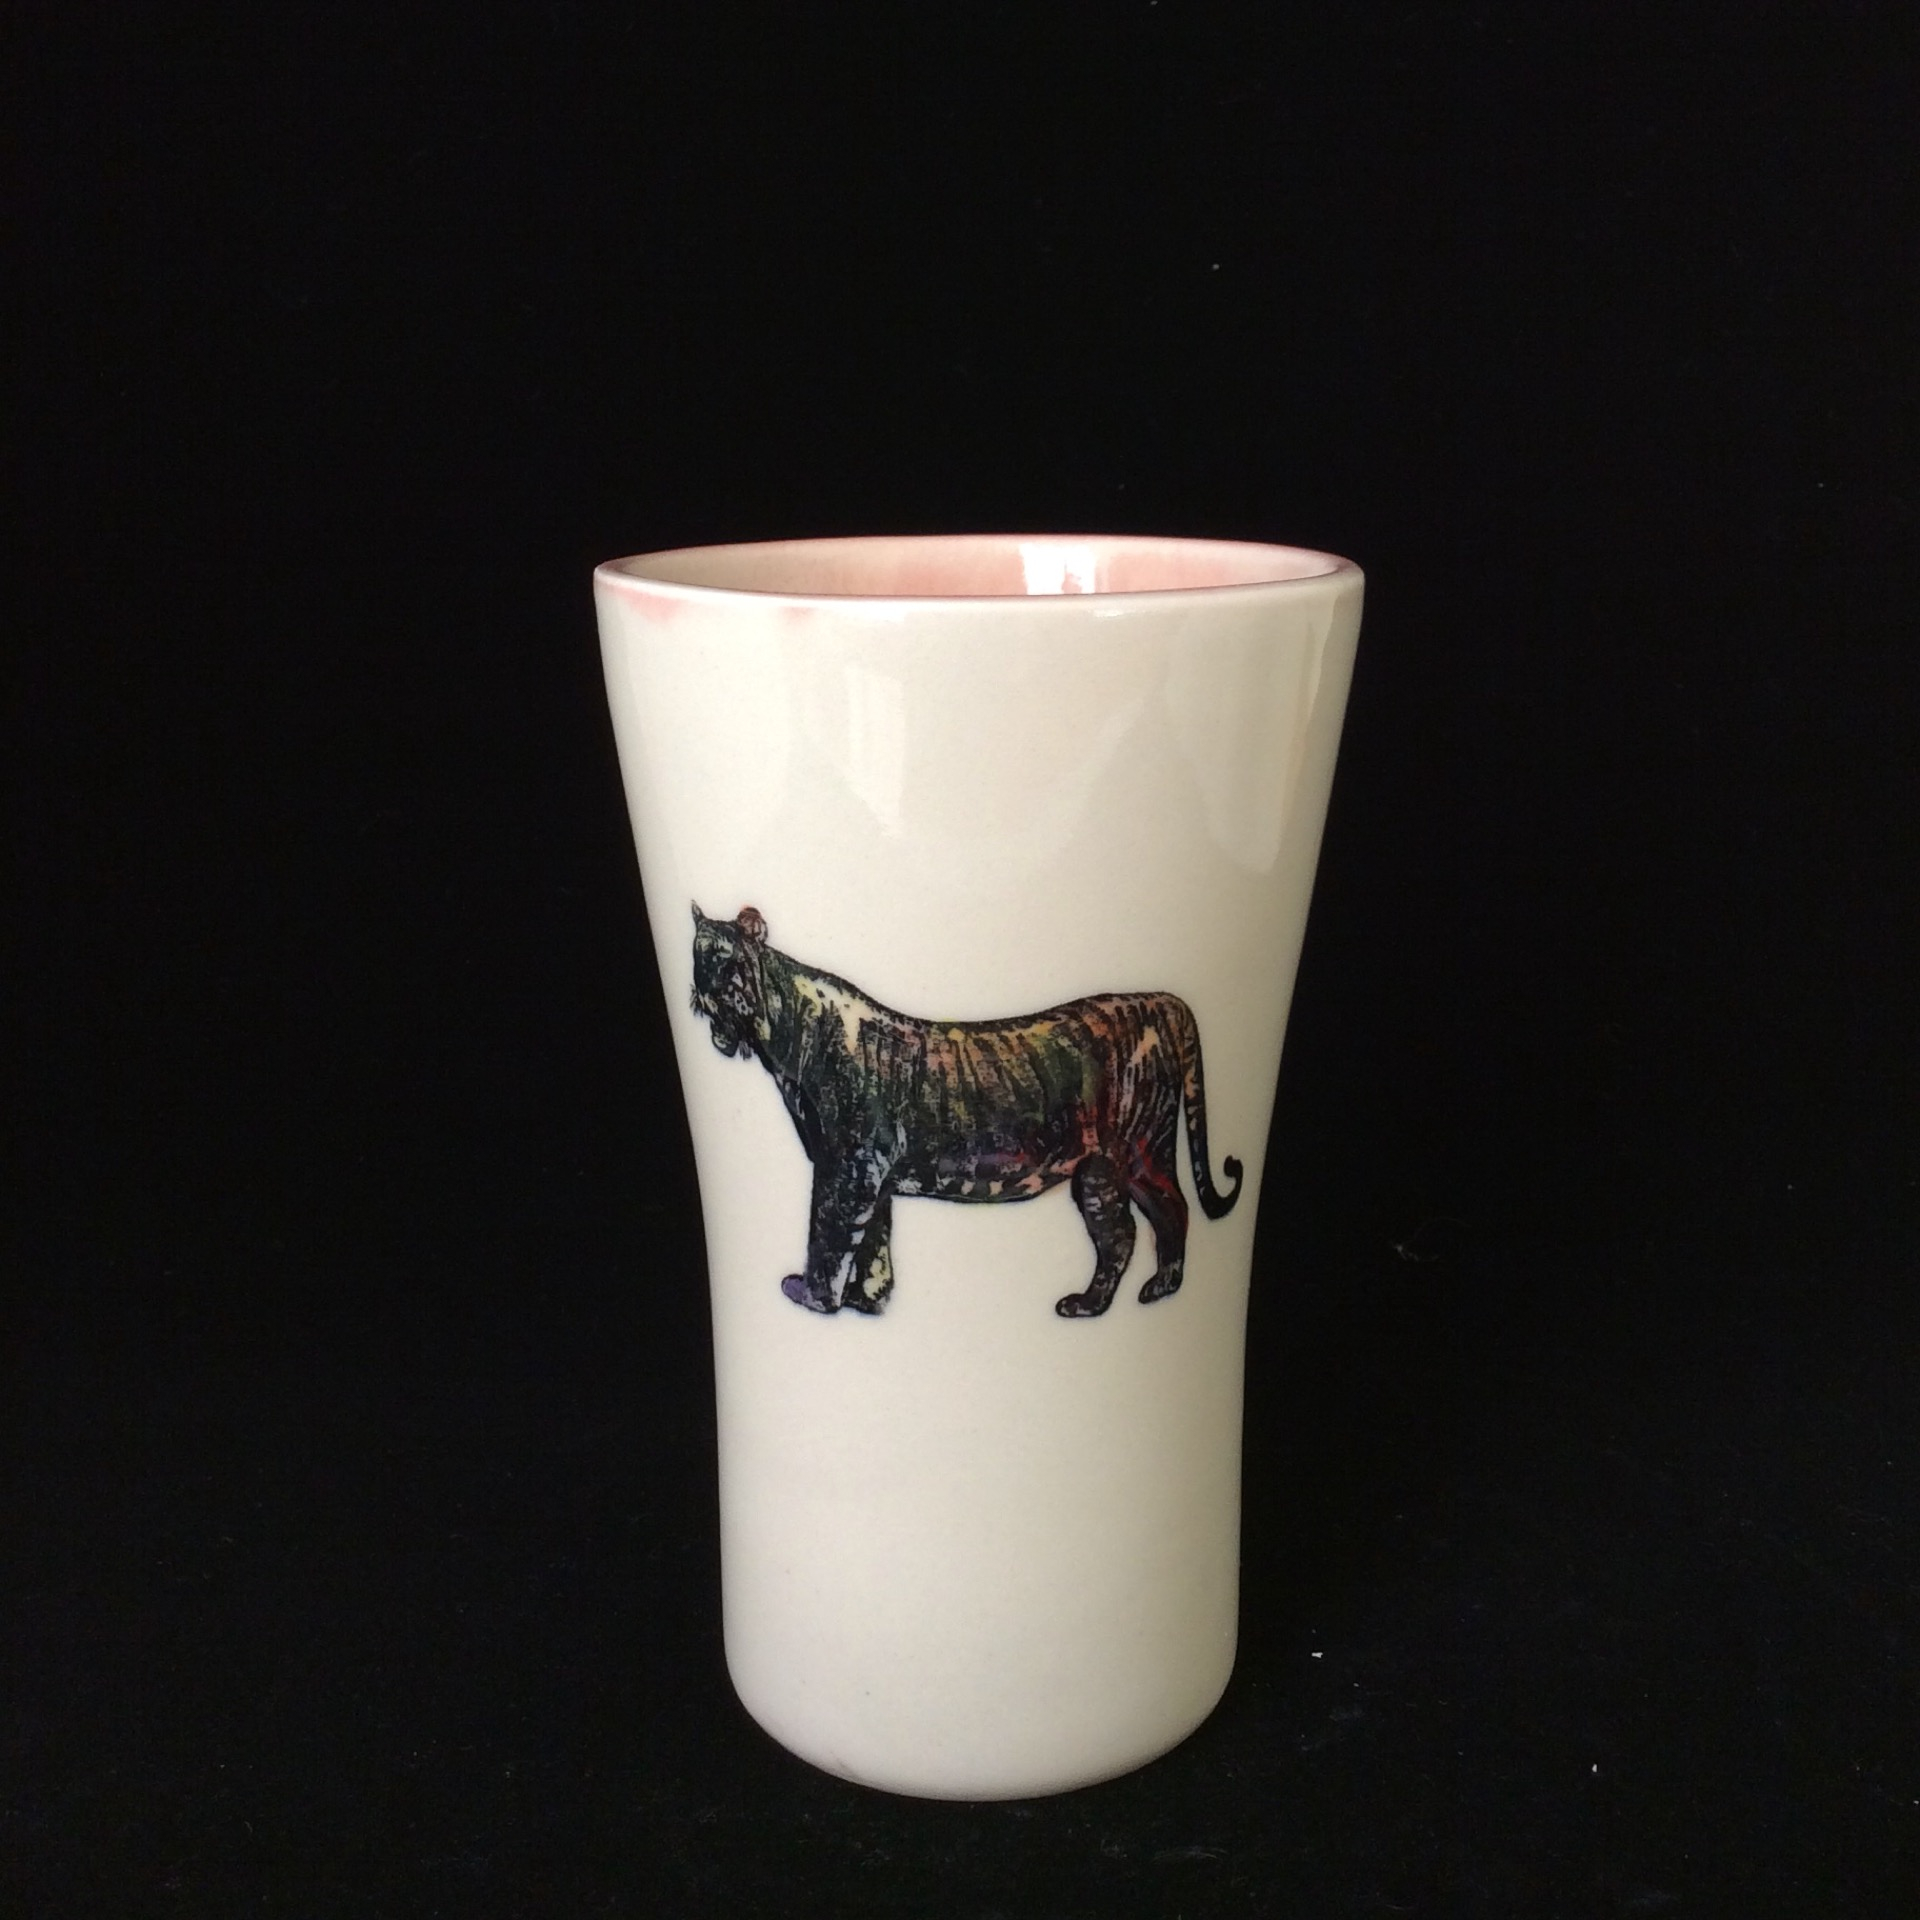 Tiger Body Cup